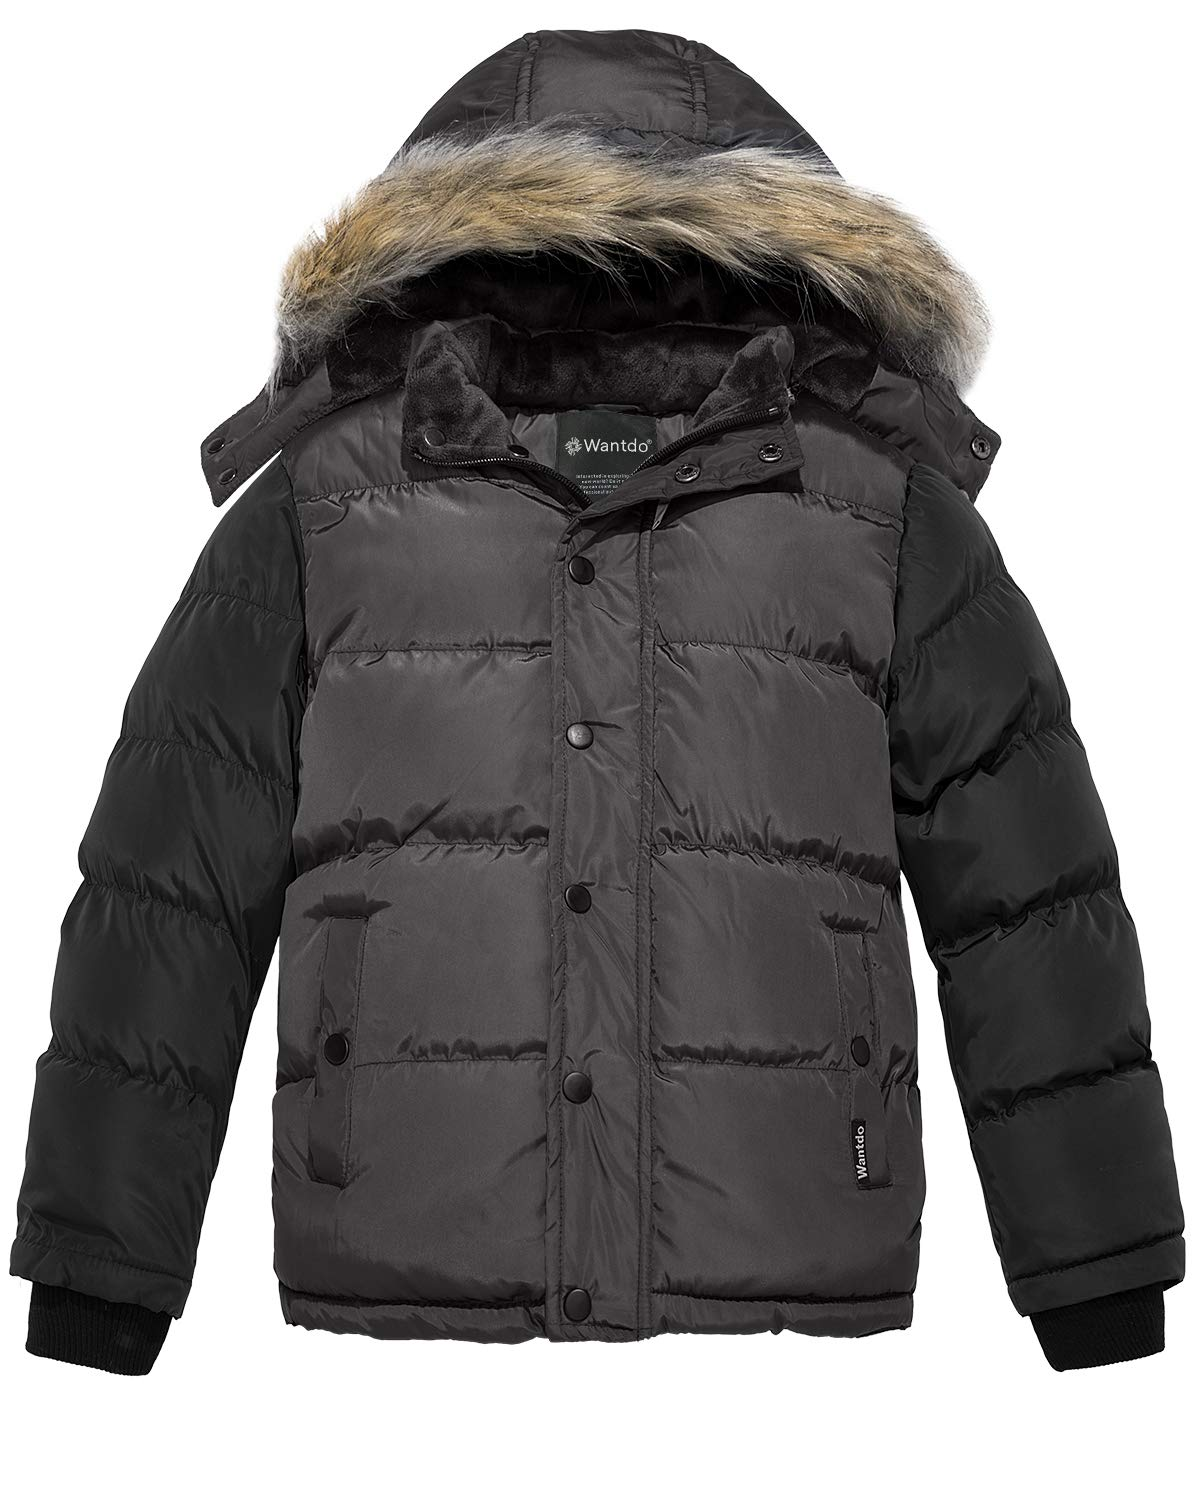 Wantdo Boy's Warm Puffer Jacket Thick Cotton Padded Winter Coat Grey 10/12